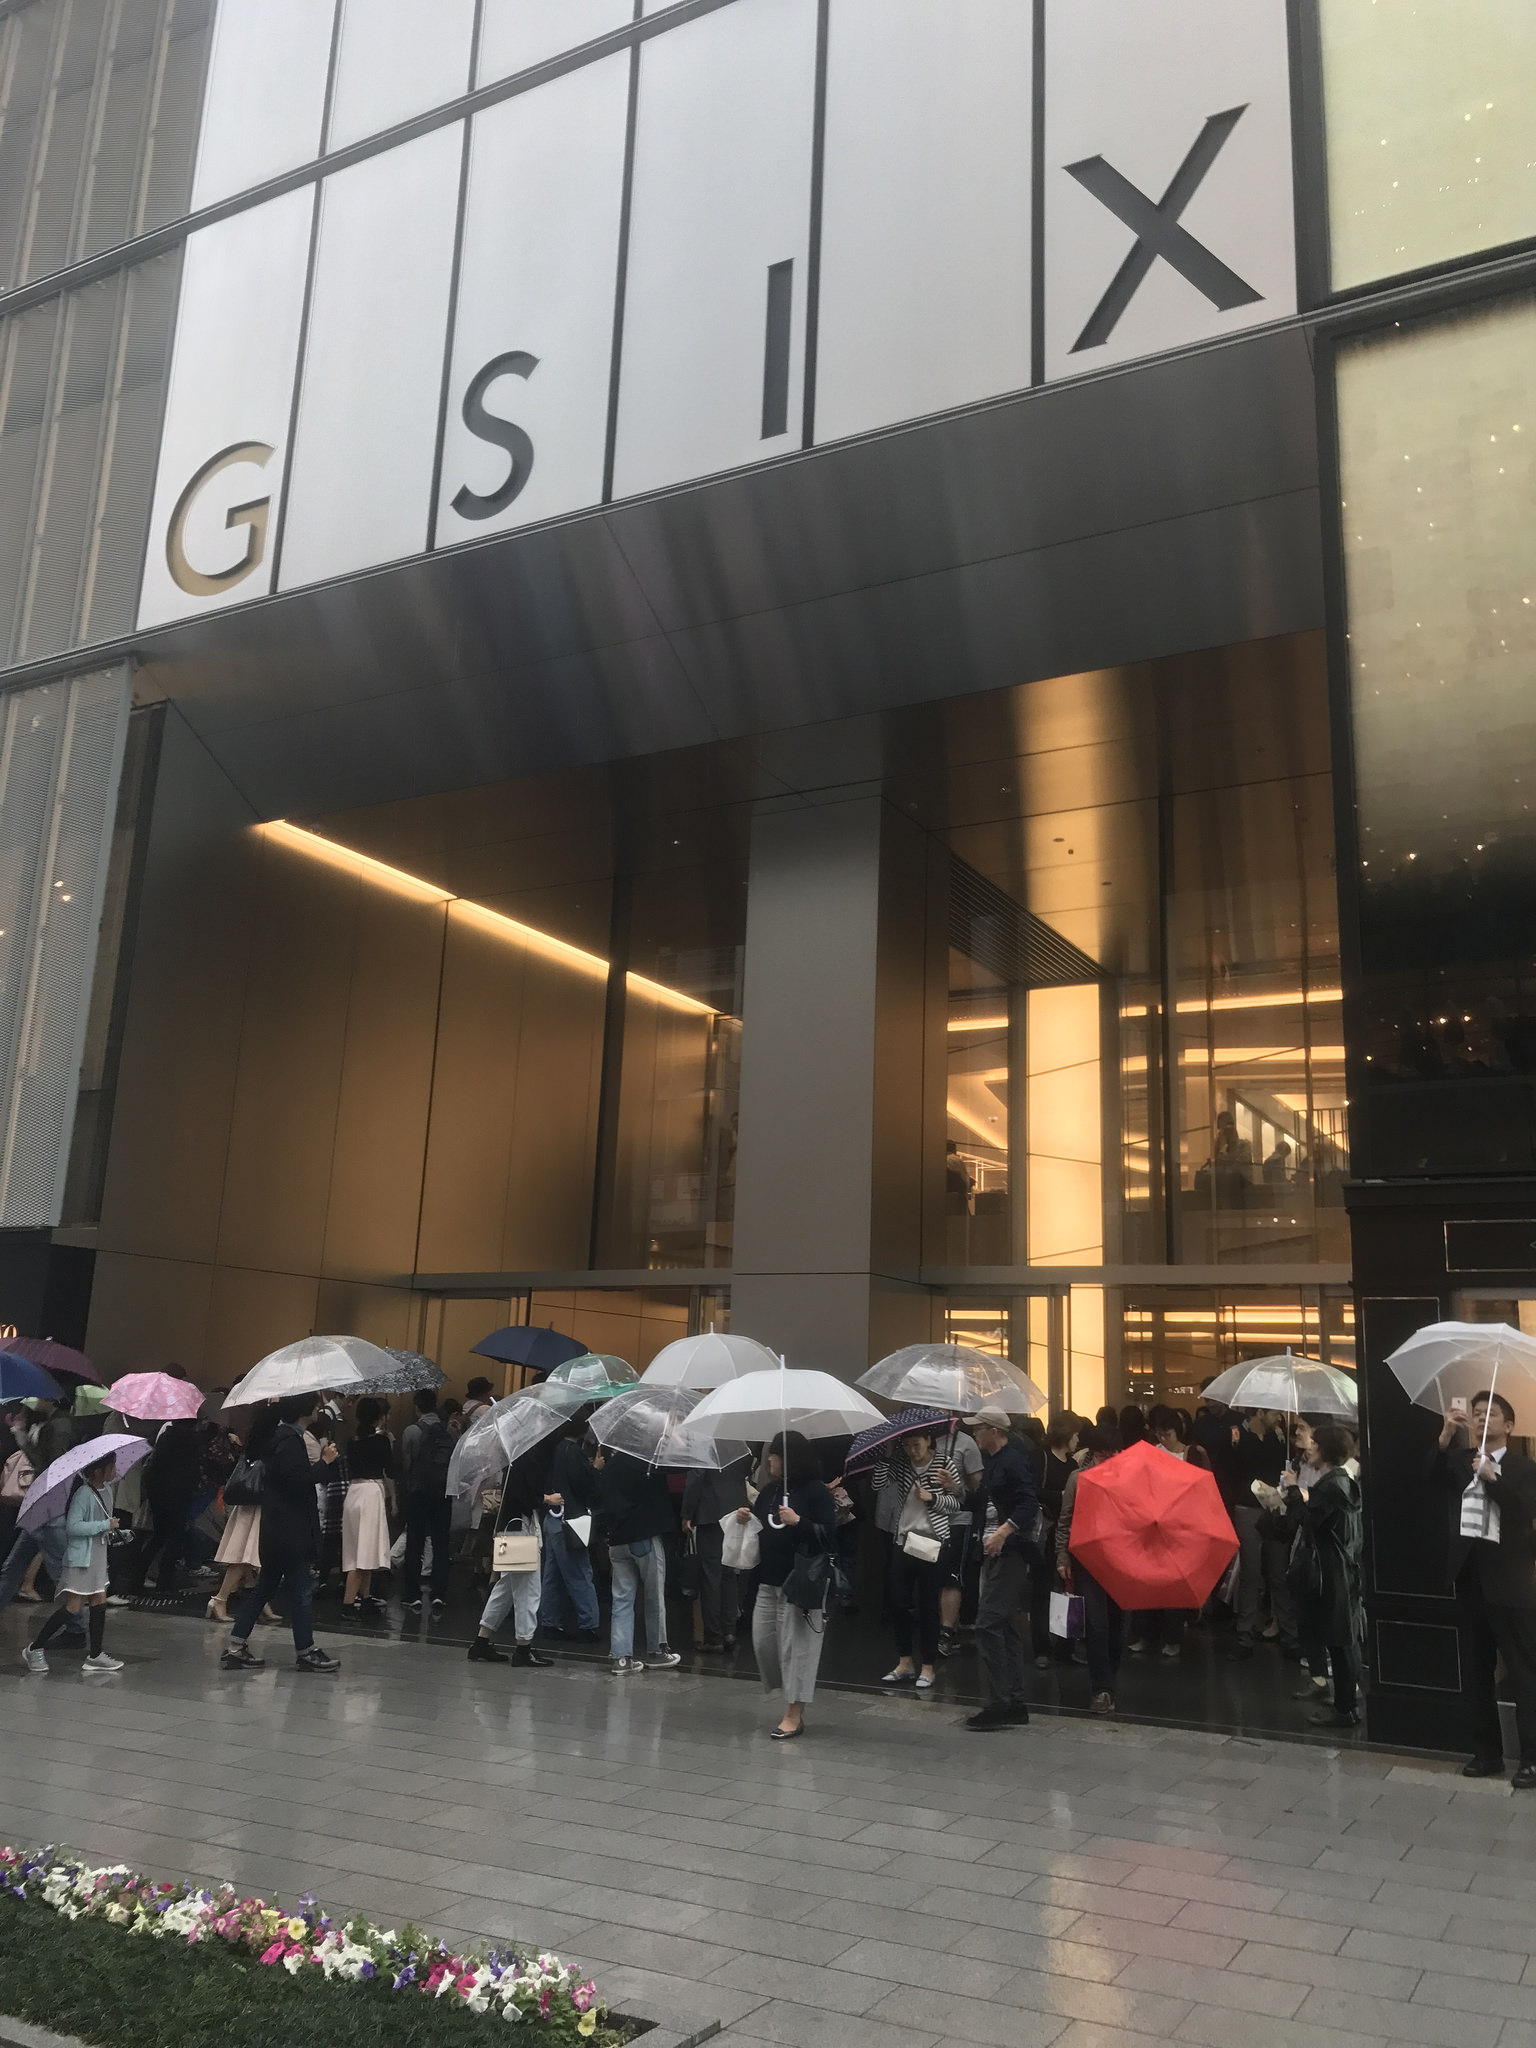 Ginza Six is popular even in the rain!